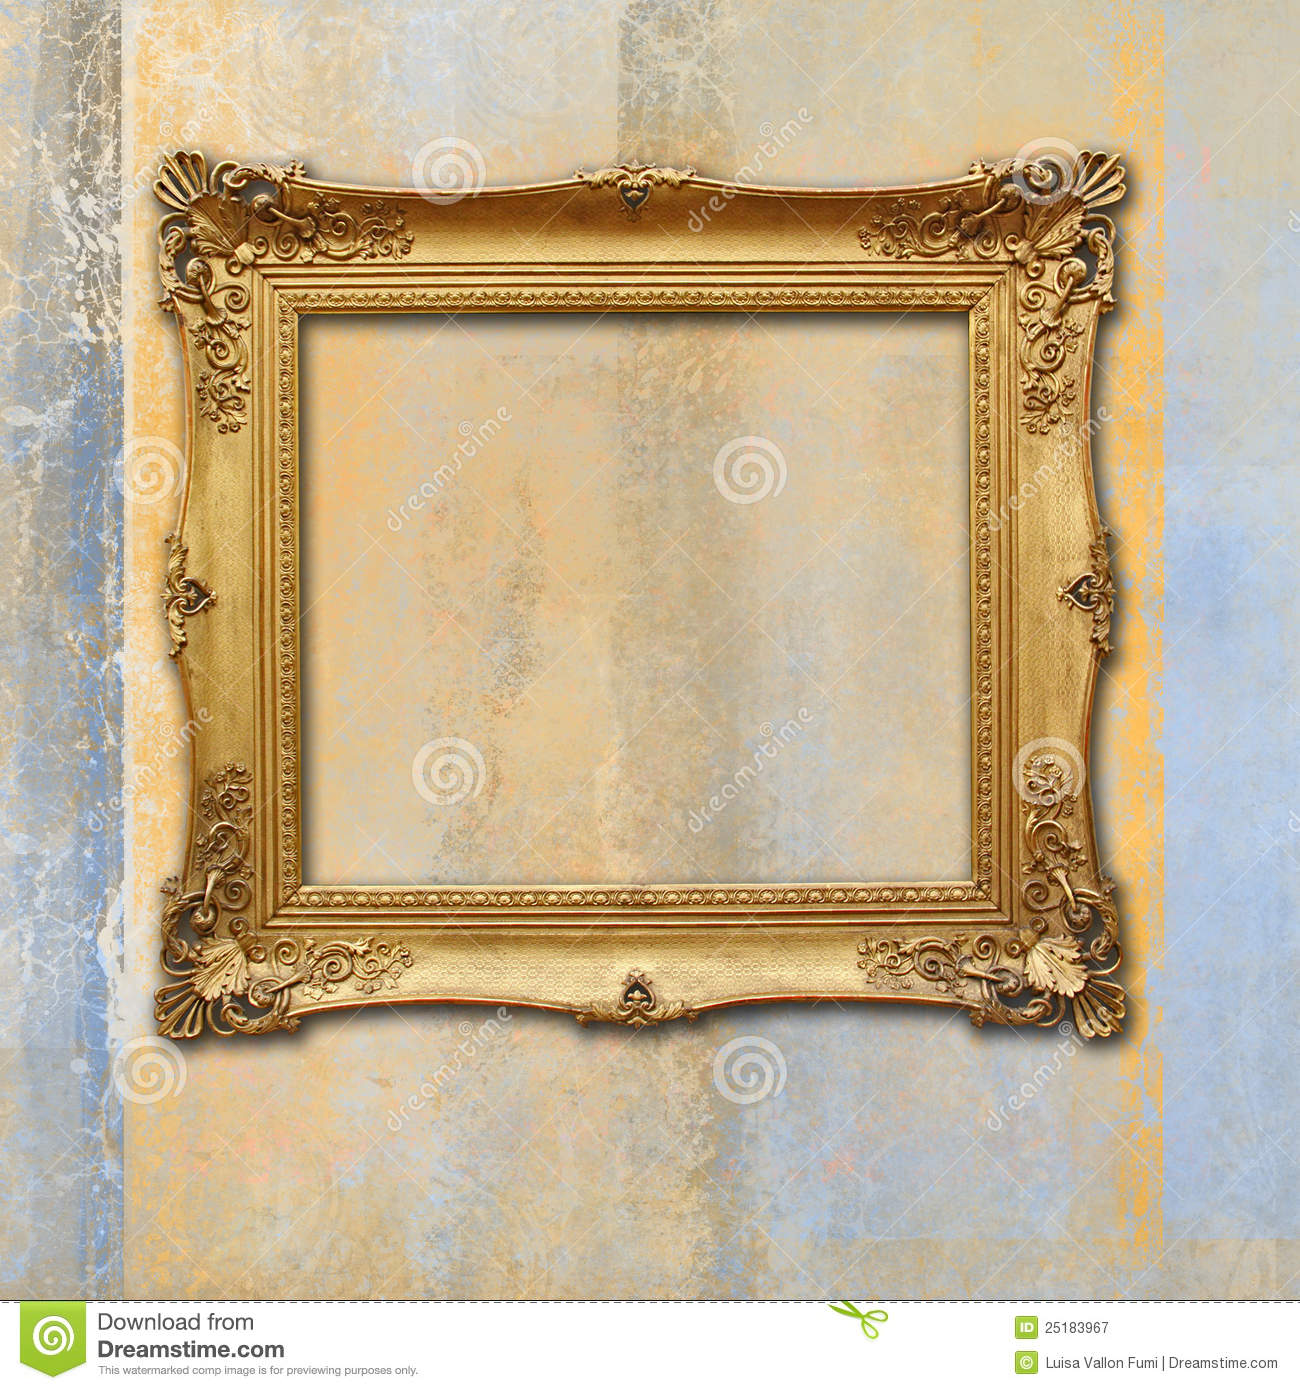 Baroque Golden Frame On A Grunge Faded Texture Stock Image - Image ...